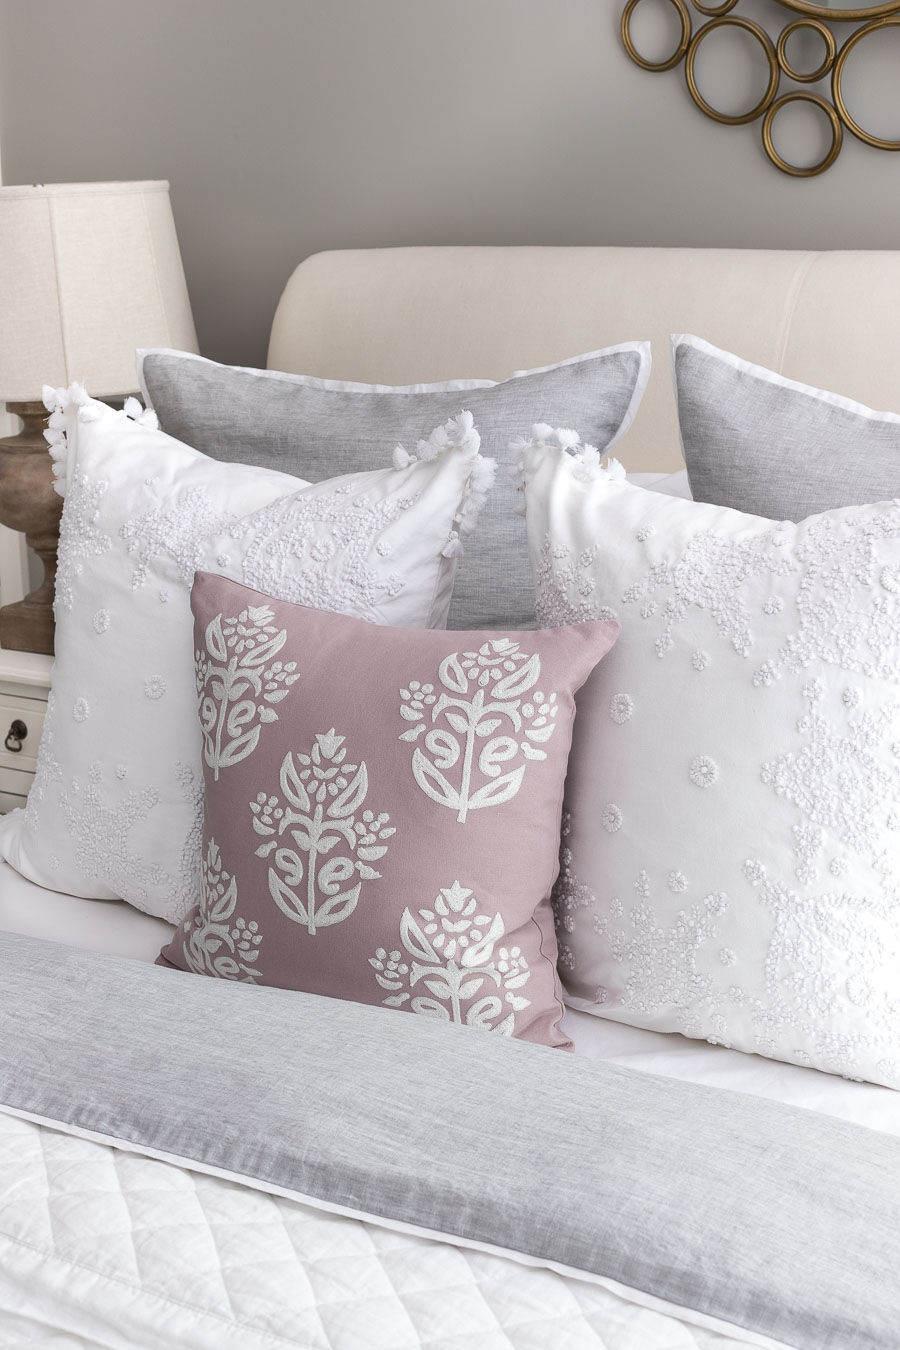 "The perfect pillow combination for a queen bed! Two Euro shams, two 22-24"" square pillows, and one smaller square or rectangular pillow."